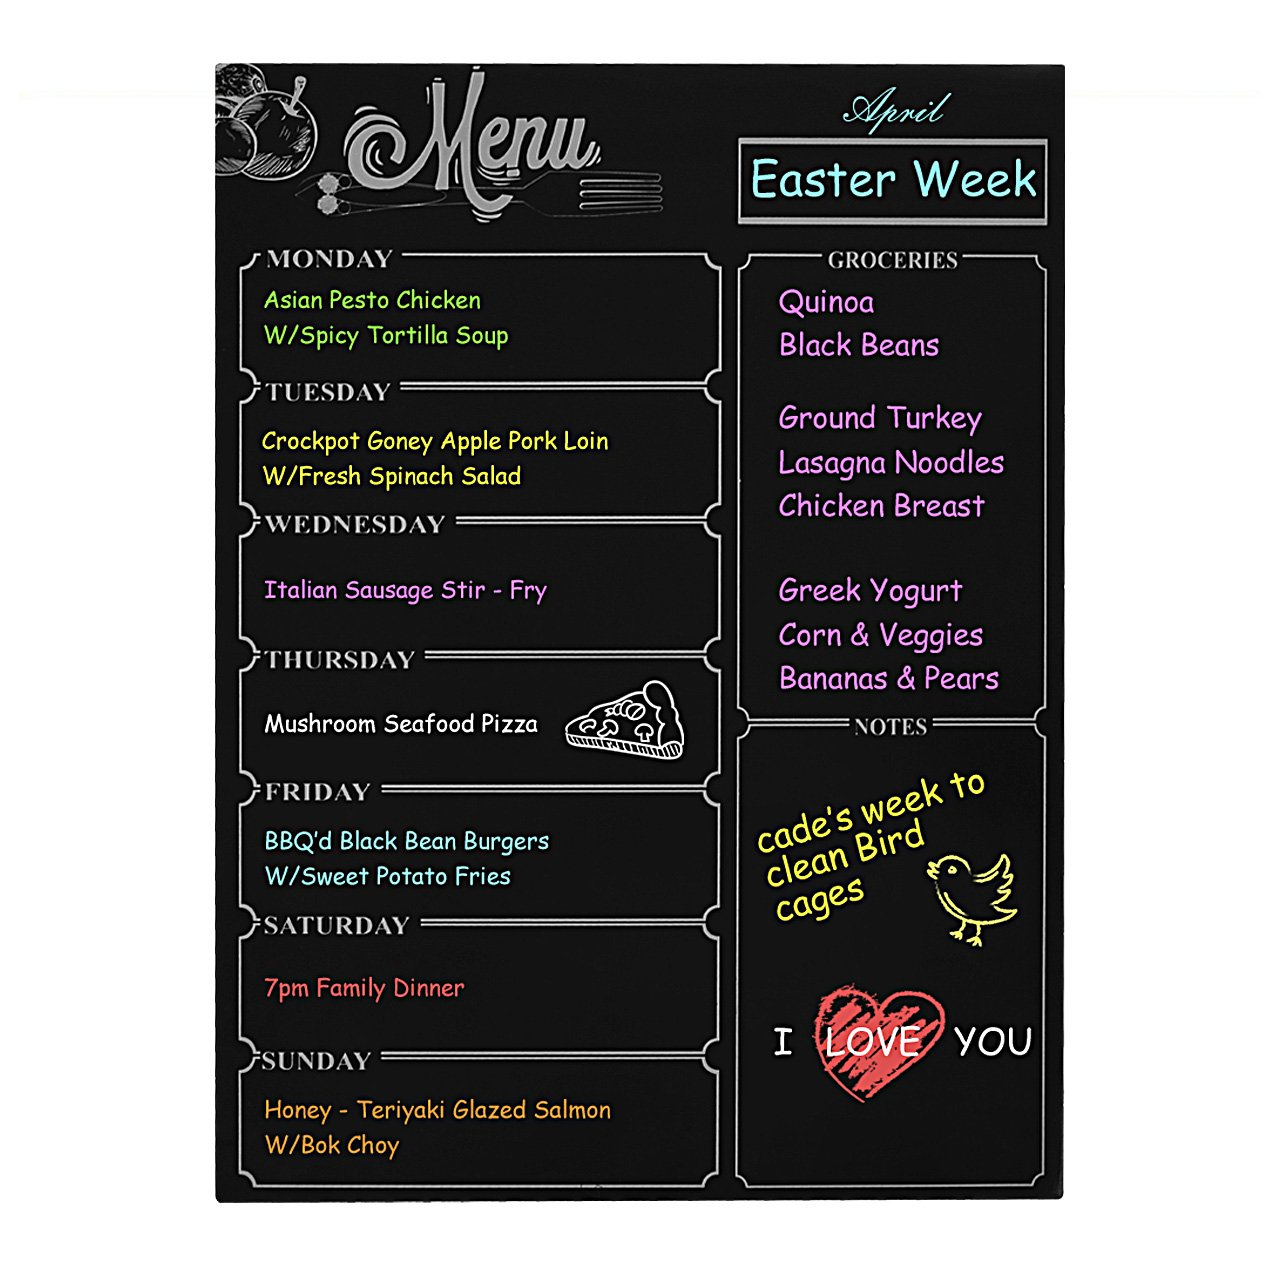 Weekly Board Magnetic Refrigerator Dry Erase Black Board Dinner List Meal Planner Note Area for Shopping List Diabetic Meal Prep Planning 16''X 12''